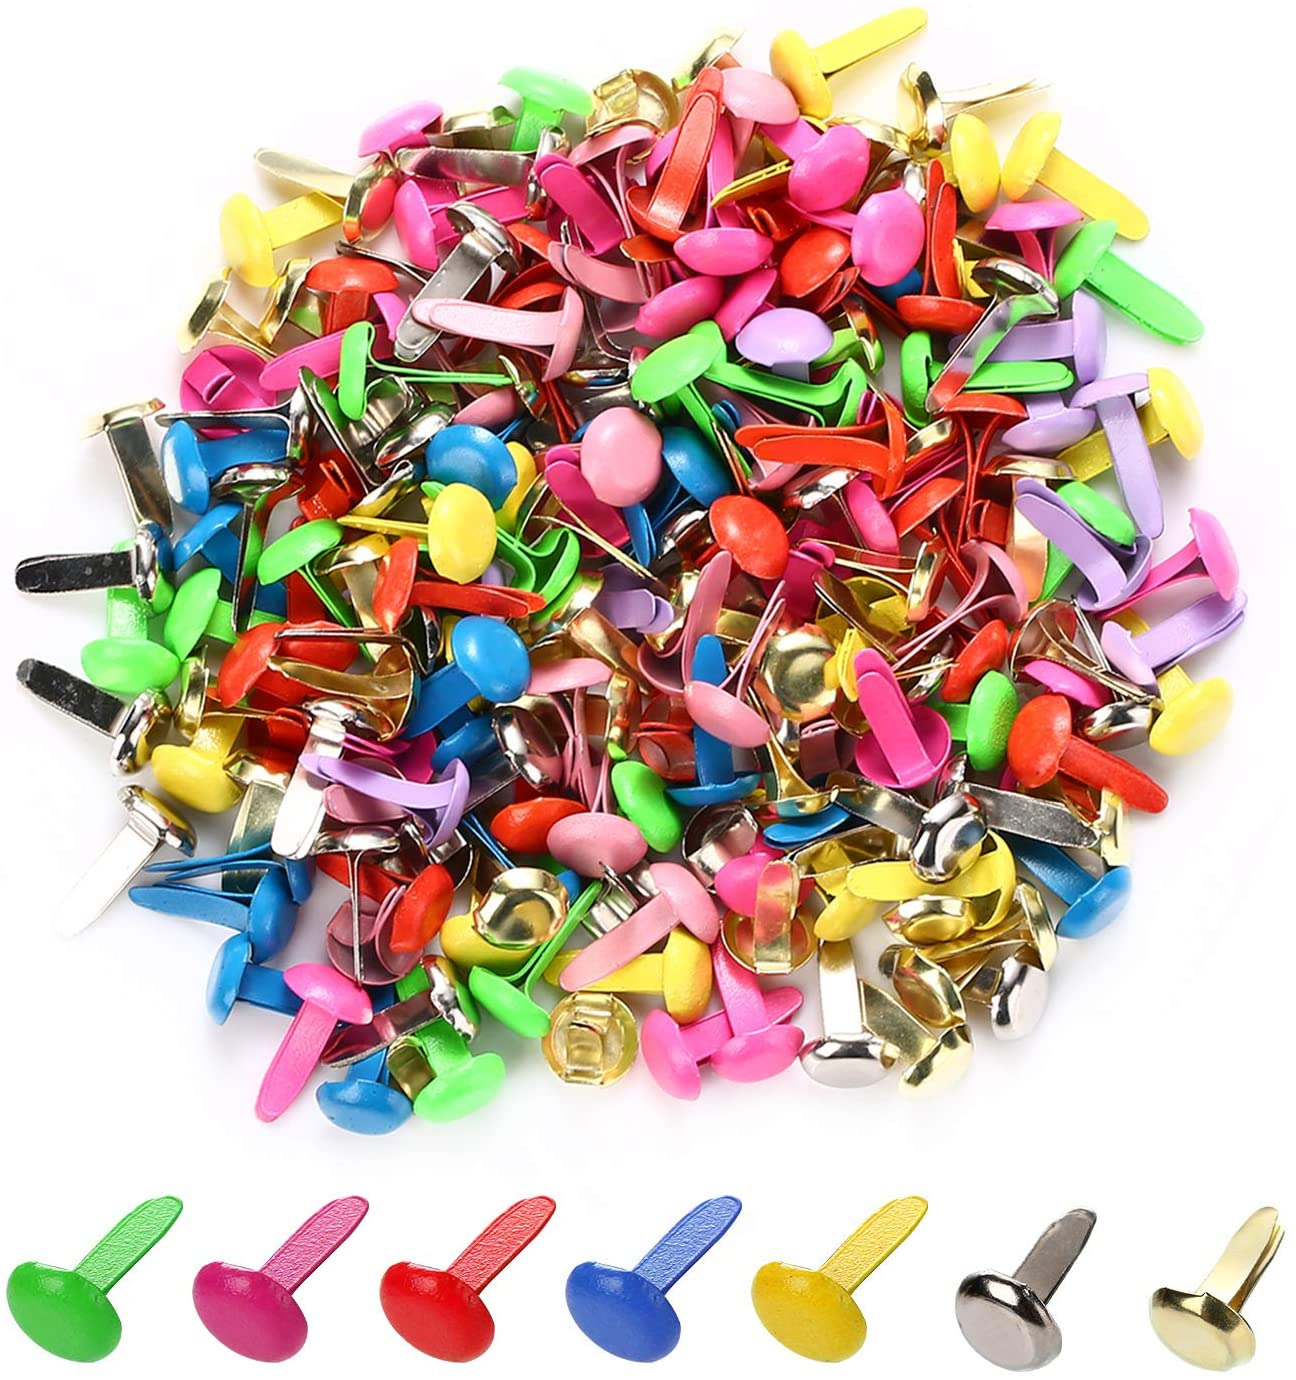 moinkerin 200 Pcs Mini Brads Metal Brad Fasteners Split Pins Pastel, 8mm x 12mm Multicolor Round Brads for Paper Craft DIY Stamping Scrapbooking